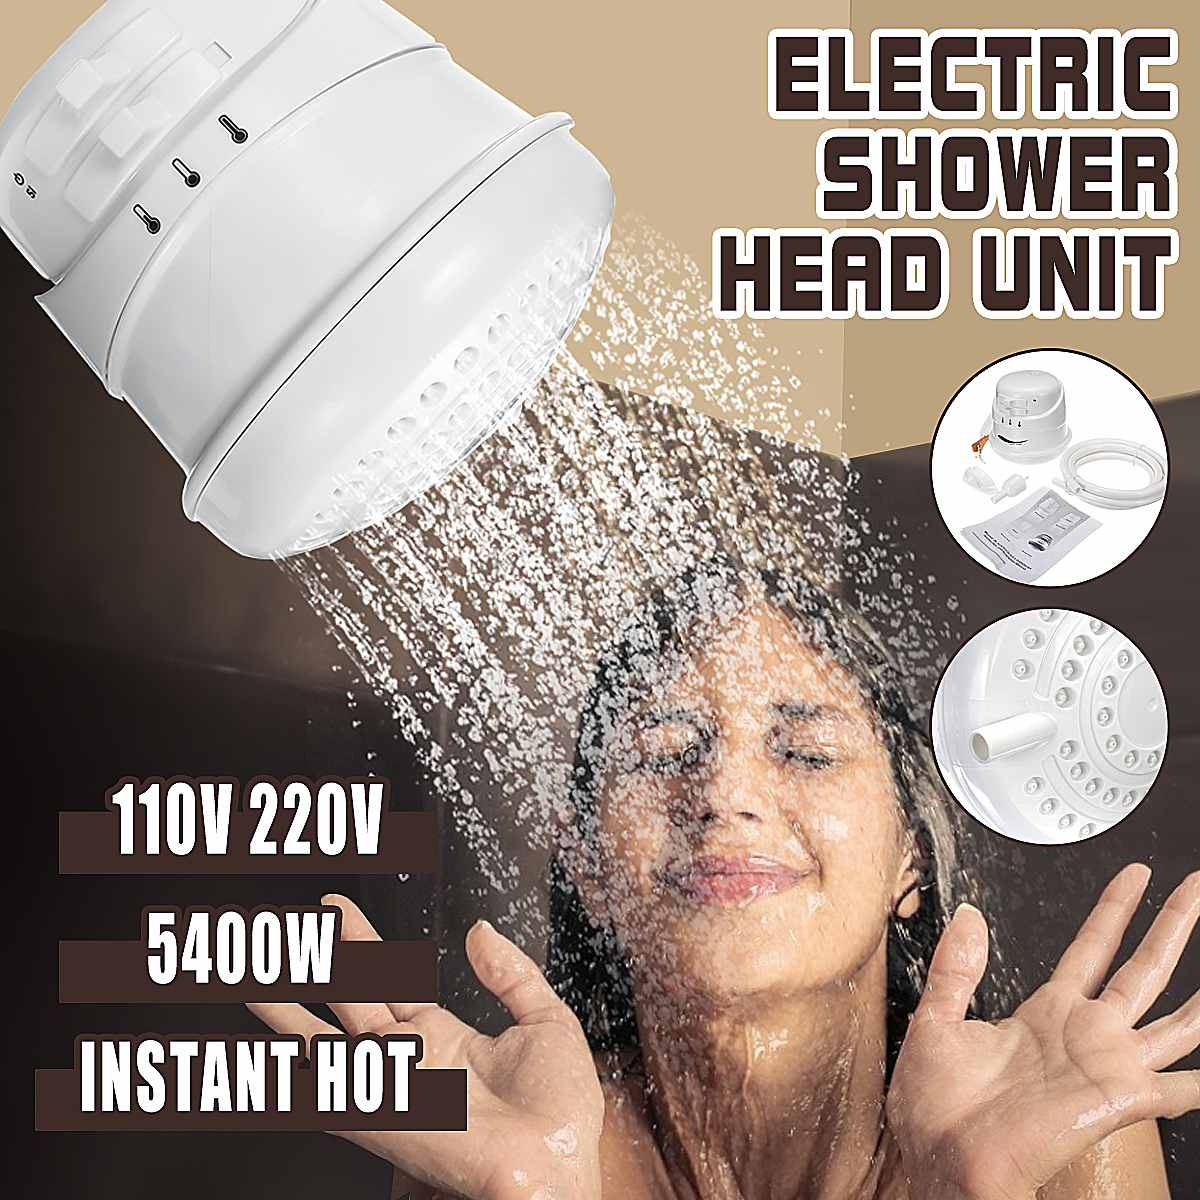 5400W 110V/220V Electric Shower Head Instant Water Heater Adjustable Temperature Bath Shower Heater with 2m Hose Bathroom Heater